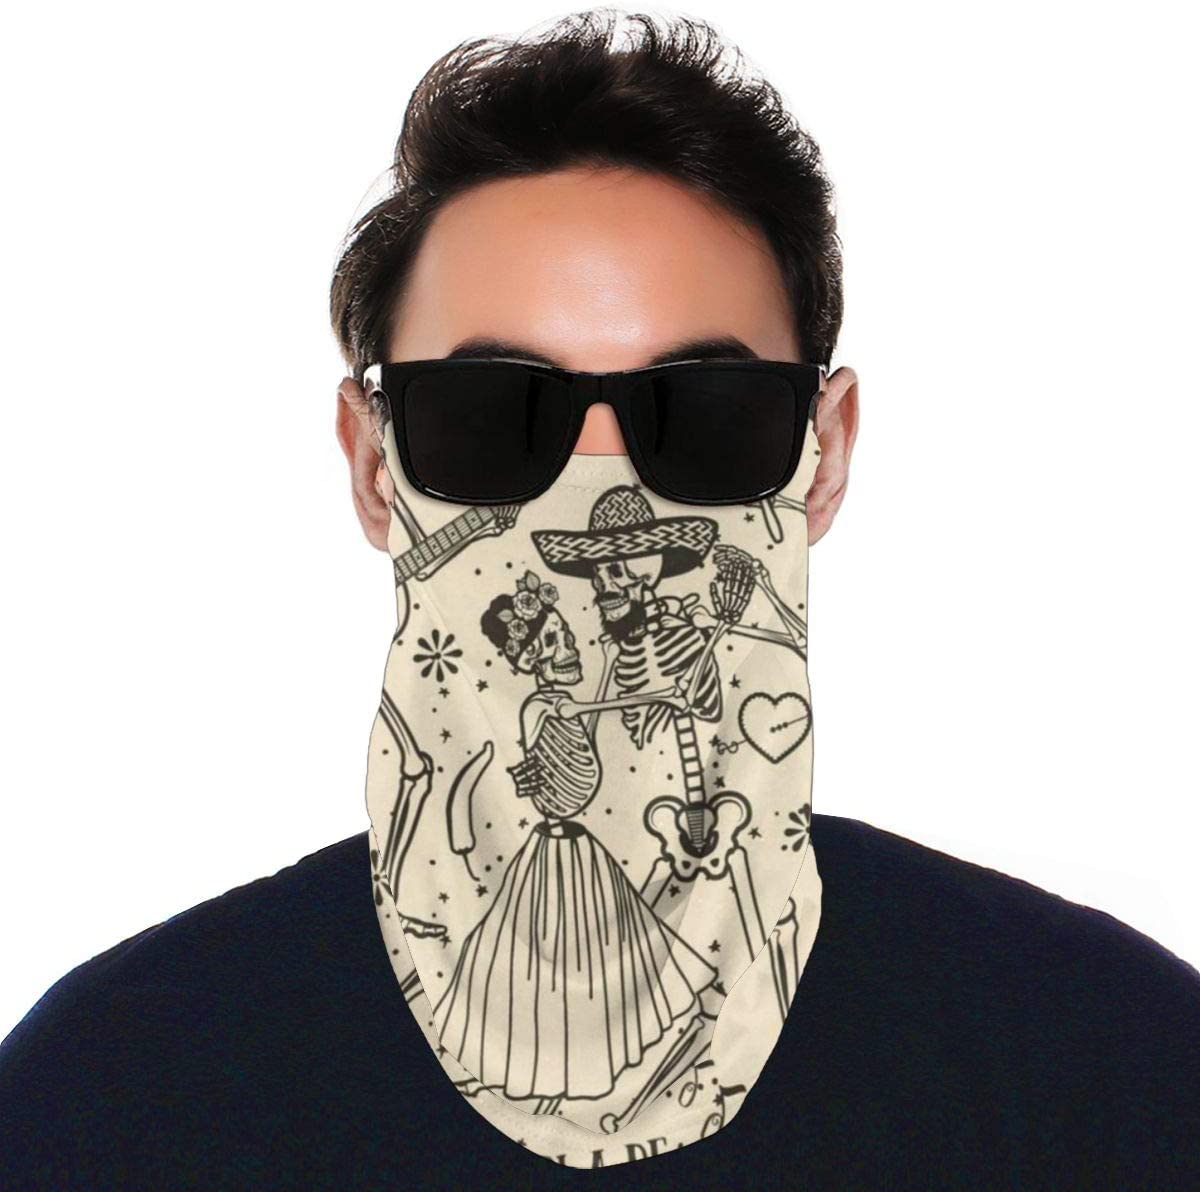 N\ A Summer Uv Balaclava Loop Face Mask Vintage Happy Halloween Skull Skeletons Large Earloop Sun Protection Neck Gaiter Face Mask Cover Bandanas for Men Women Adults